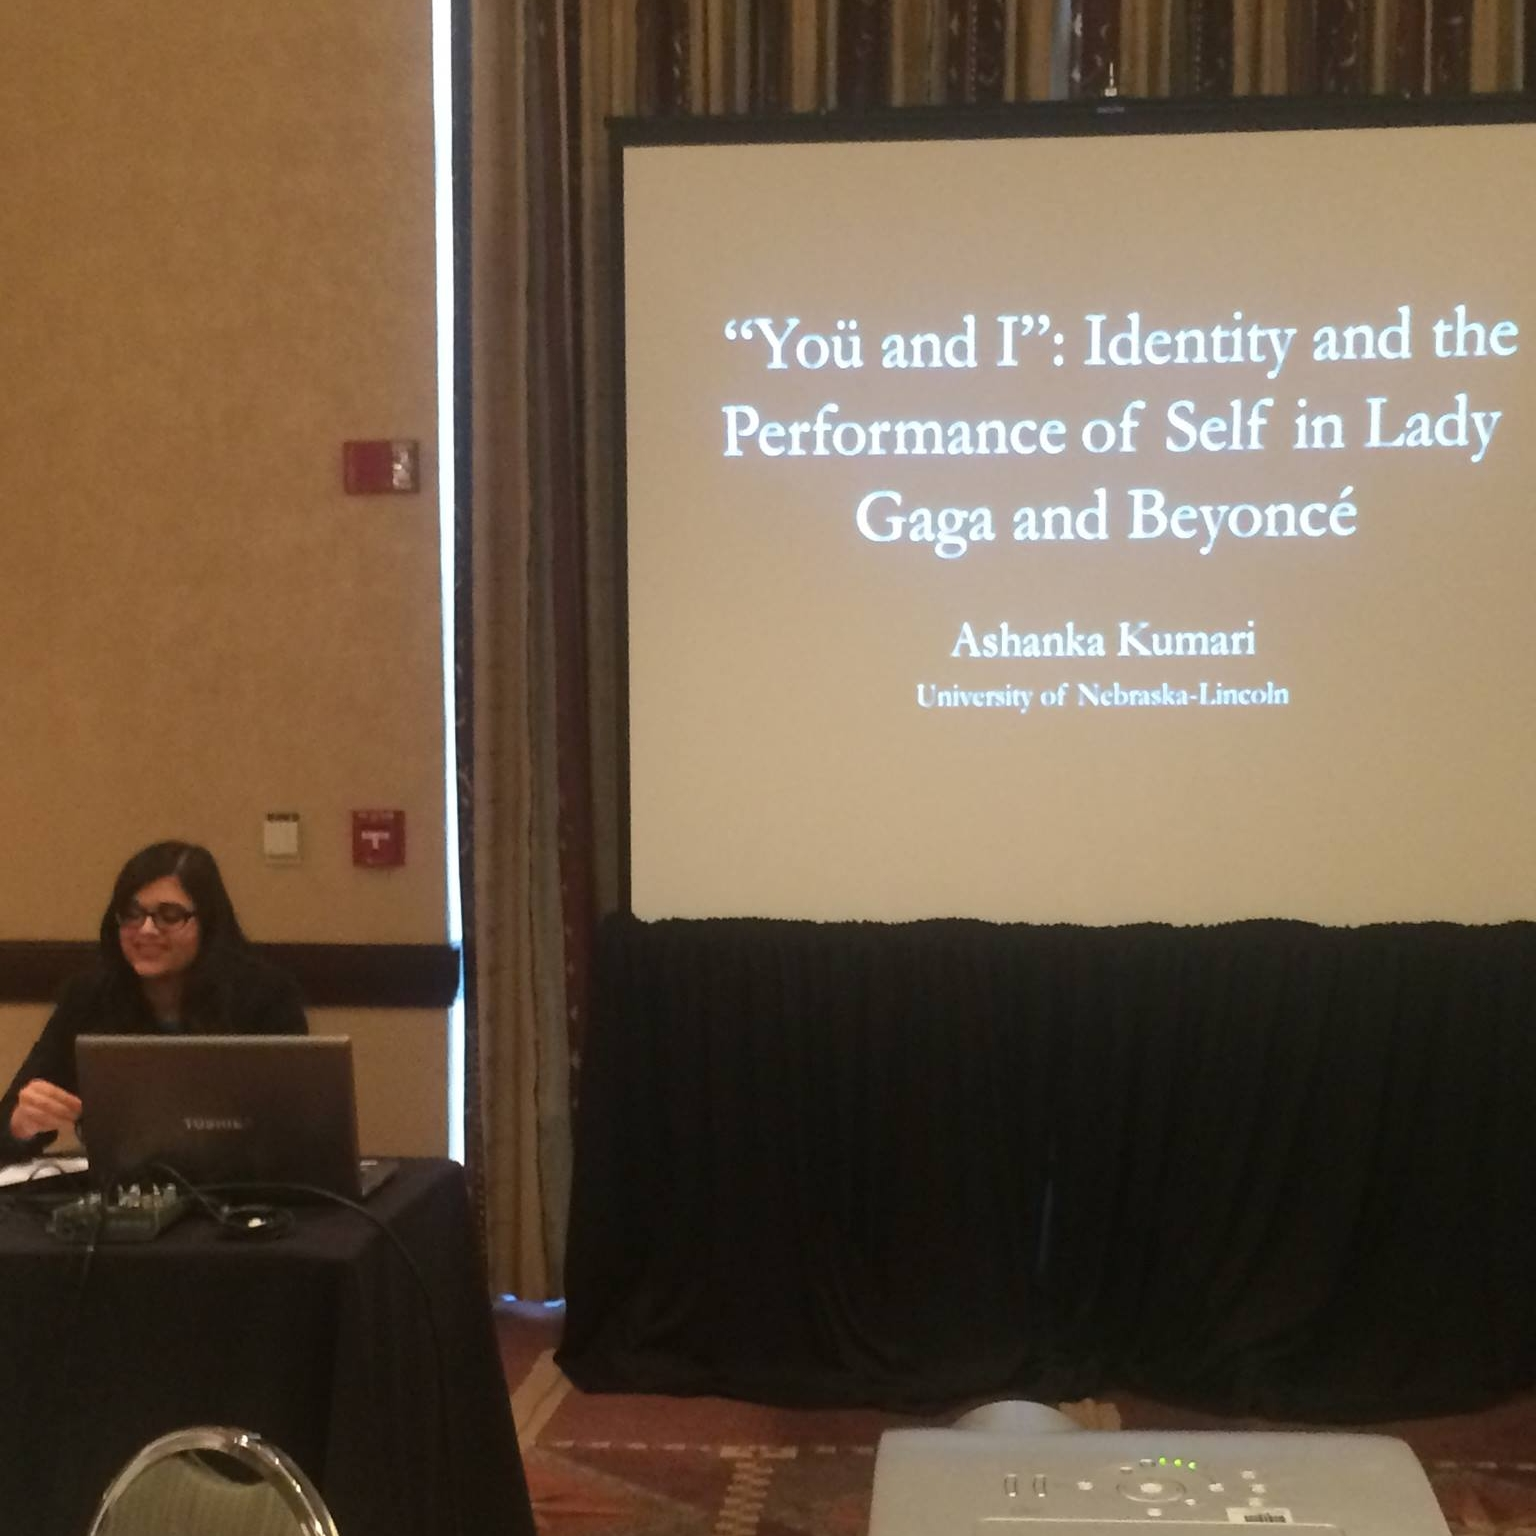 "Southwest Popular/American Culture Studies Conference  - Pictured here: Ashanka Kumari (seated) presents a paper on identity in Lady Gaga and Beyoncé's performances at the 2015 Southwest Popular/American Culture Studies Conference.Kumari, Ashanka. ""'Yoü and I': Identity and the Performance of Self in Lady Gaga and Beyoncé."" Paper. Southwest Popular/American Culture Studies Conference. Albuquerque, New Mexico. February 2015."